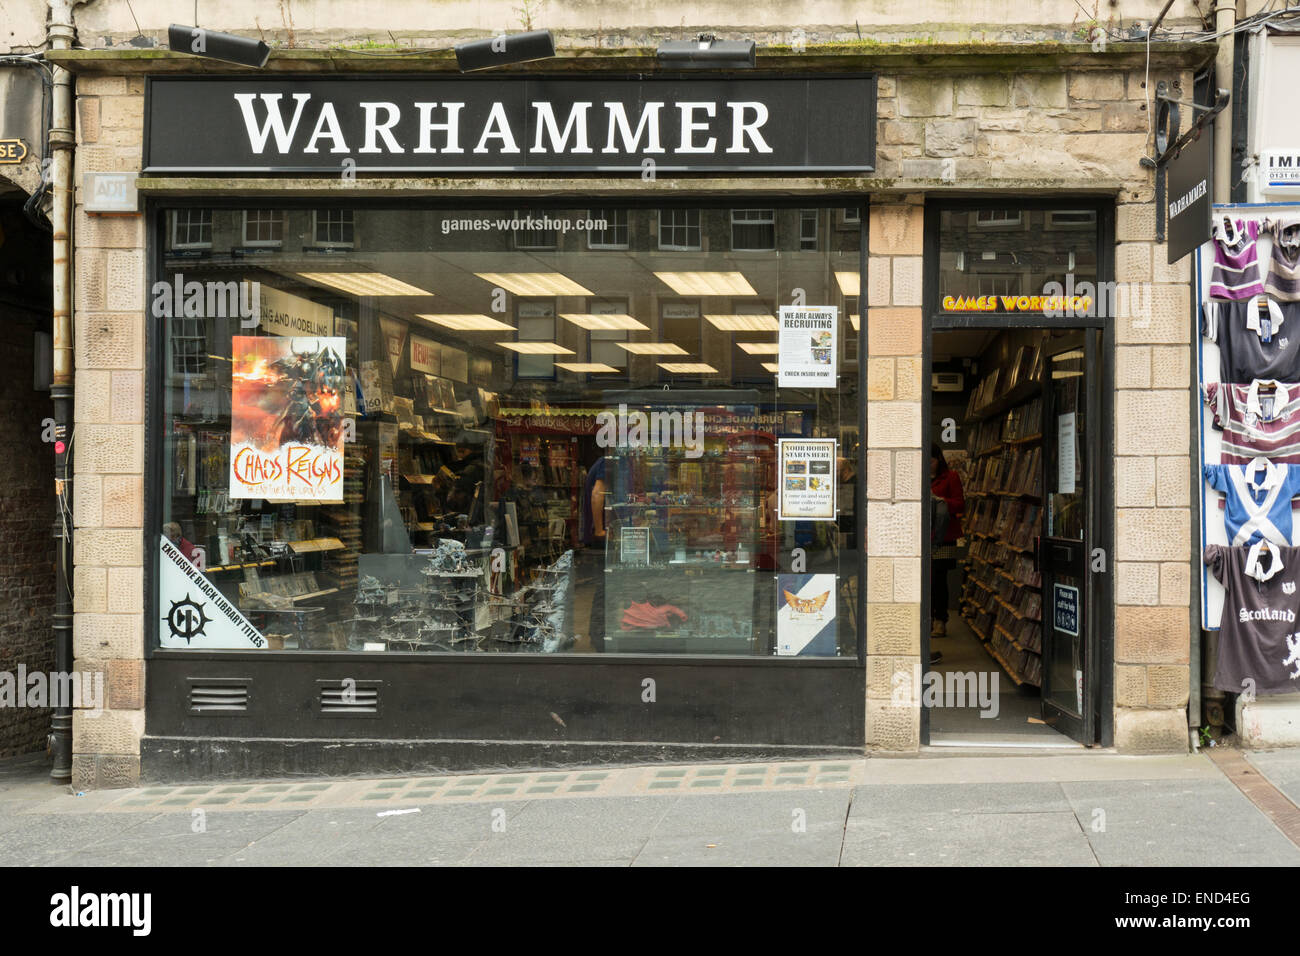 Warhammer Games Workshop shop on the Royal Mile, Edinburgh, Scotland - Stock Image